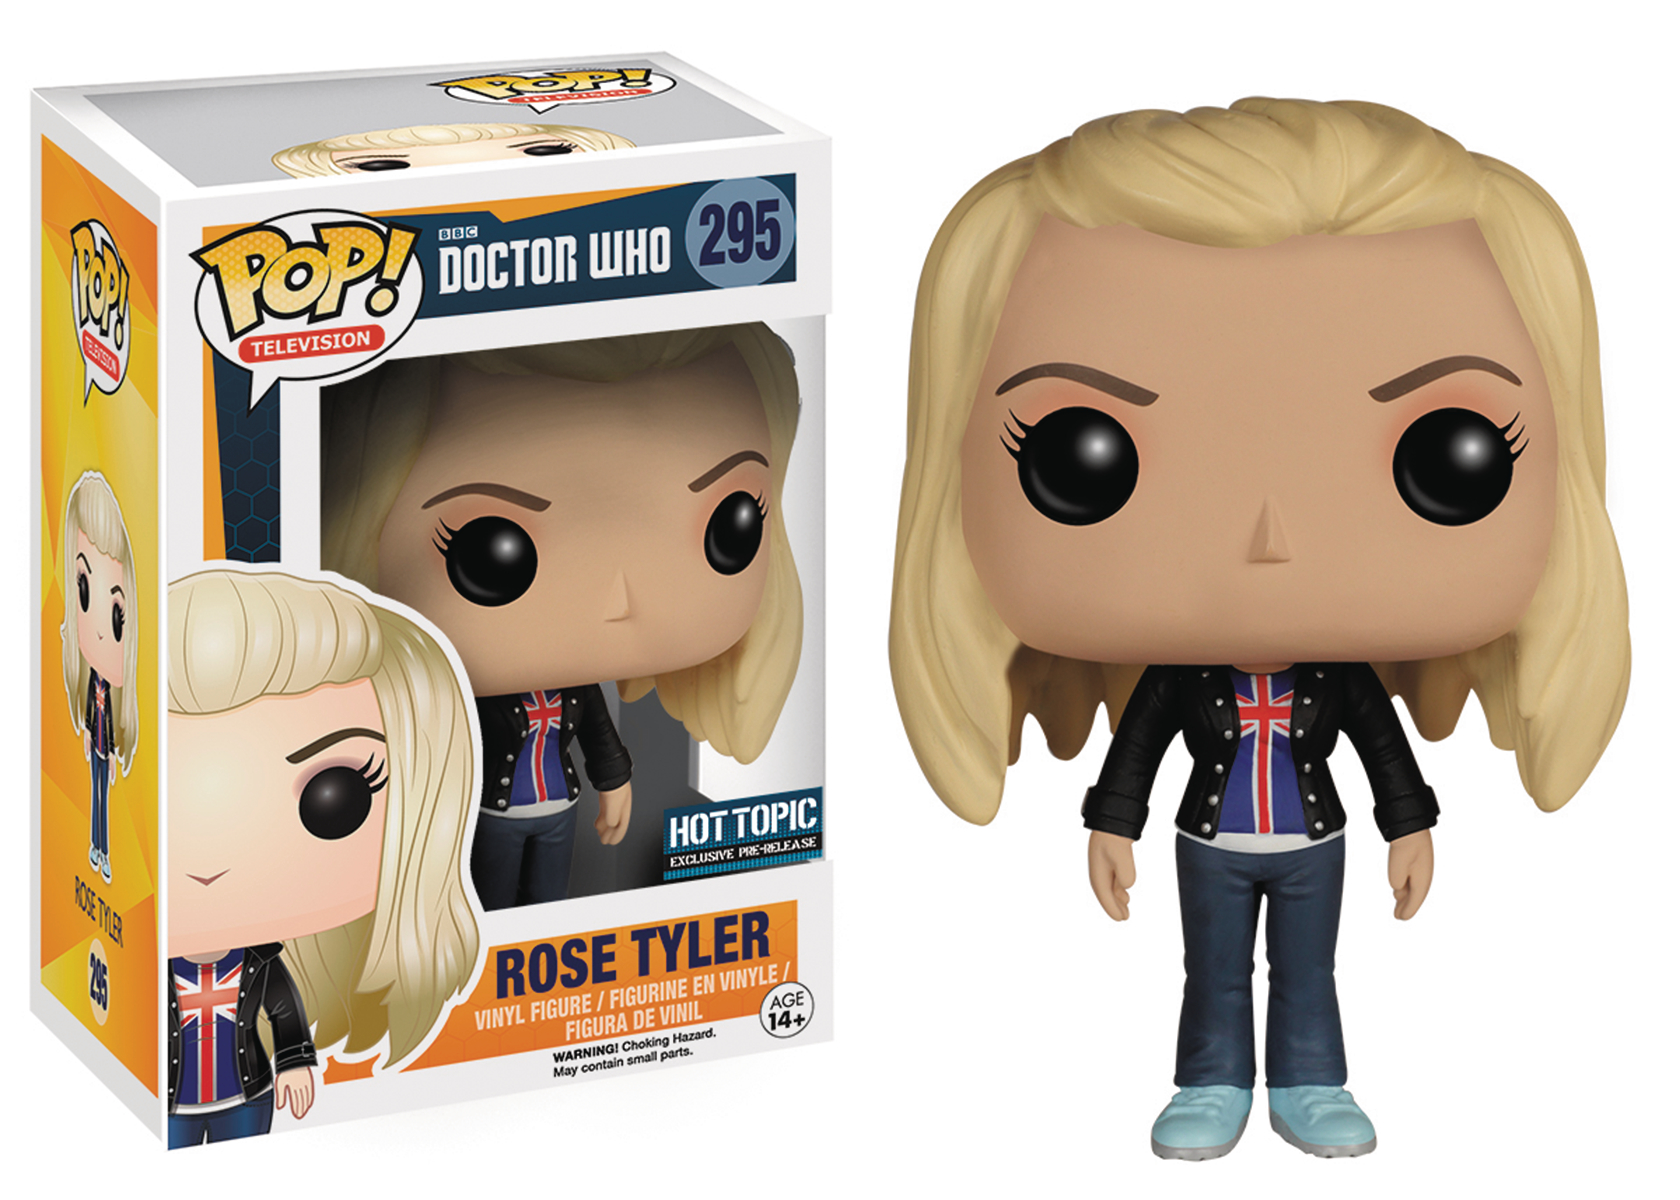 POP DOCTOR WHO BAD WOLF ROSE TYLER VINYL FIG